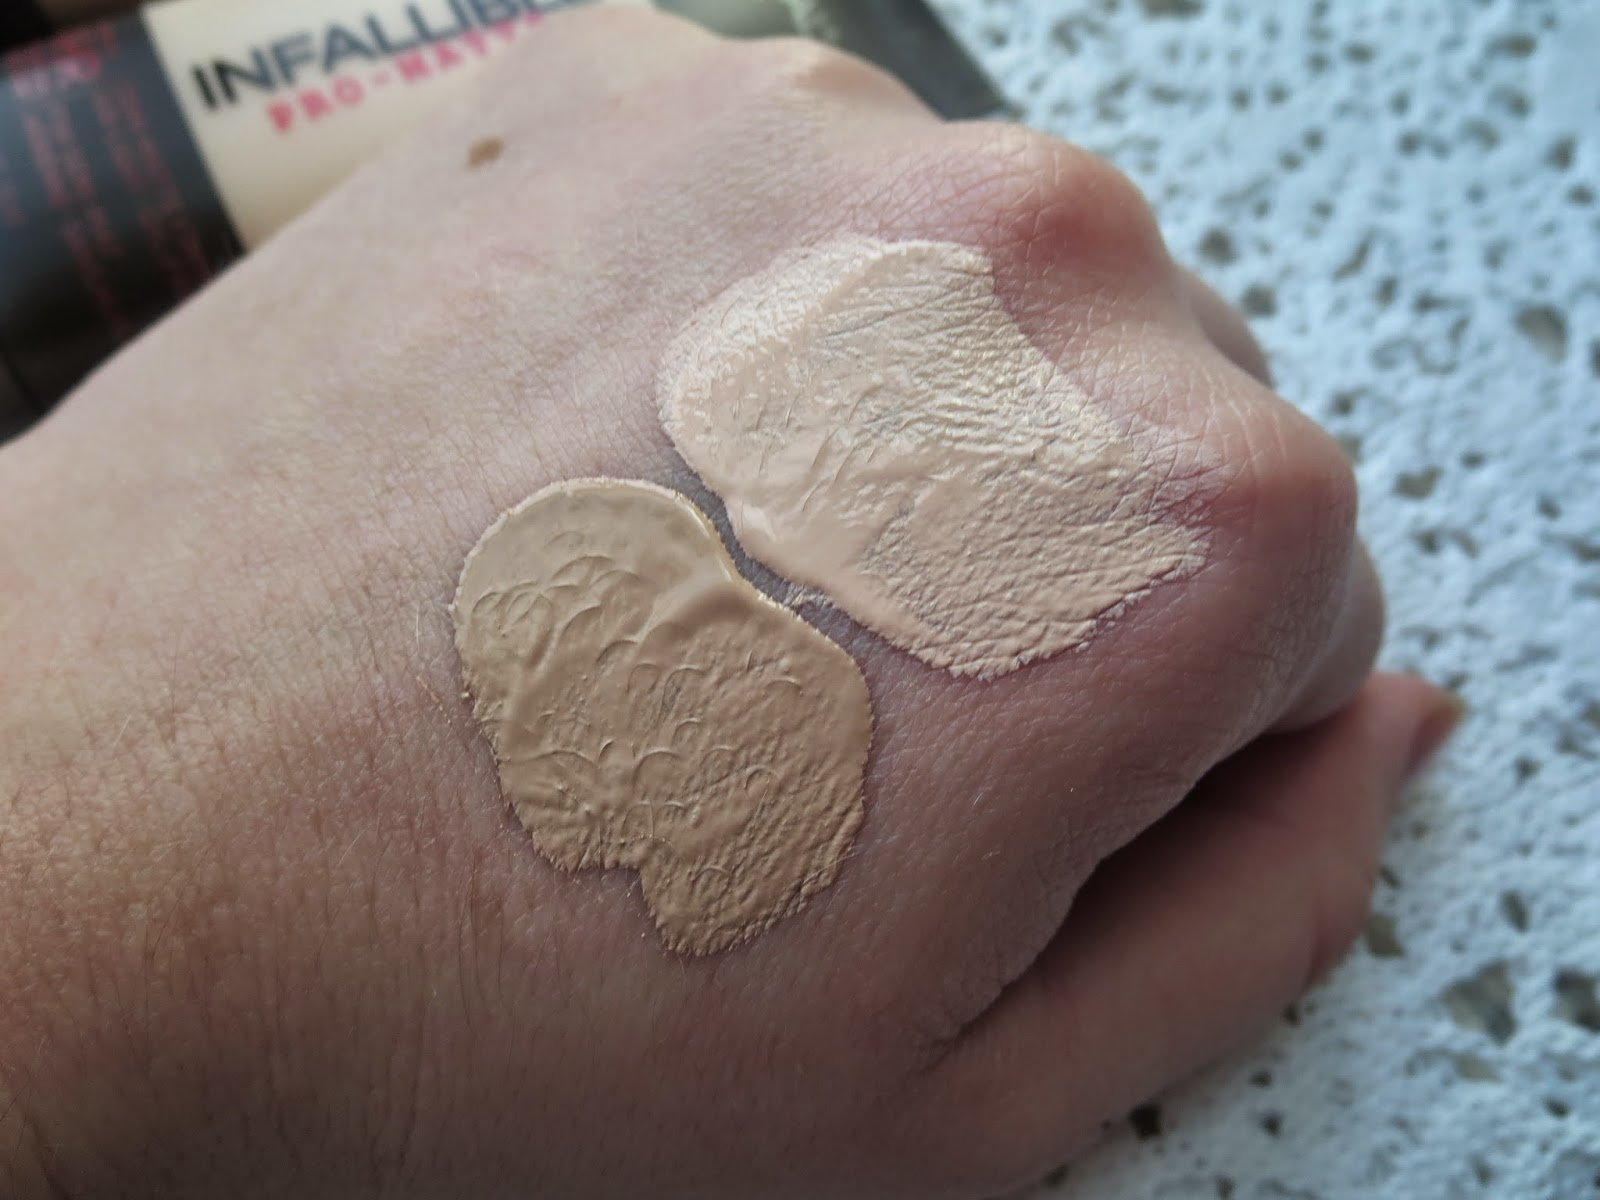 Product Review Loreal Infallible Pro Matte Foundation Blossom 24hr A Picture Of Swatch 102 Shell Beige